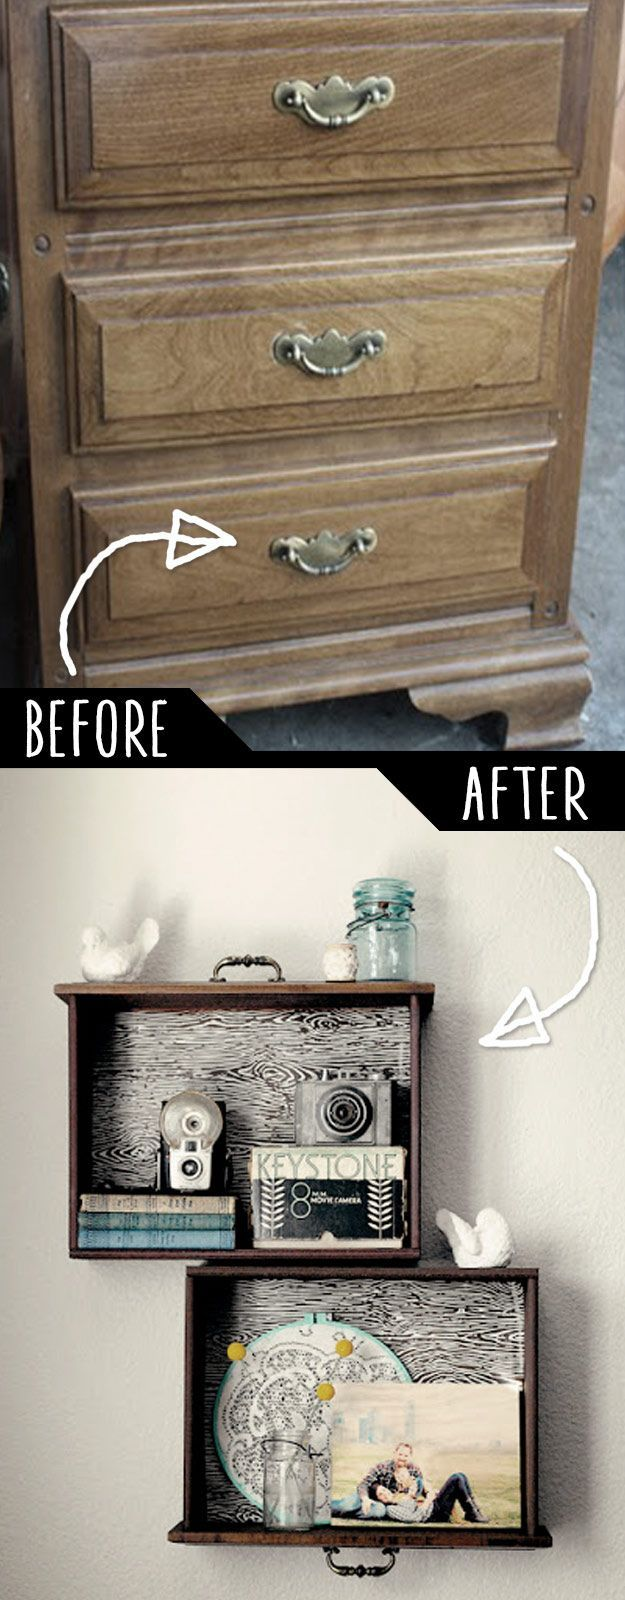 DIY Furniture Hacks | DIY Drawer Shelves | Cool Ideas for Creative Do It Yourself Furniture | Cheap Home Decor Ideas for Bedroom, Bathroom, Living Room, Kitchen - diyjoy.com/...